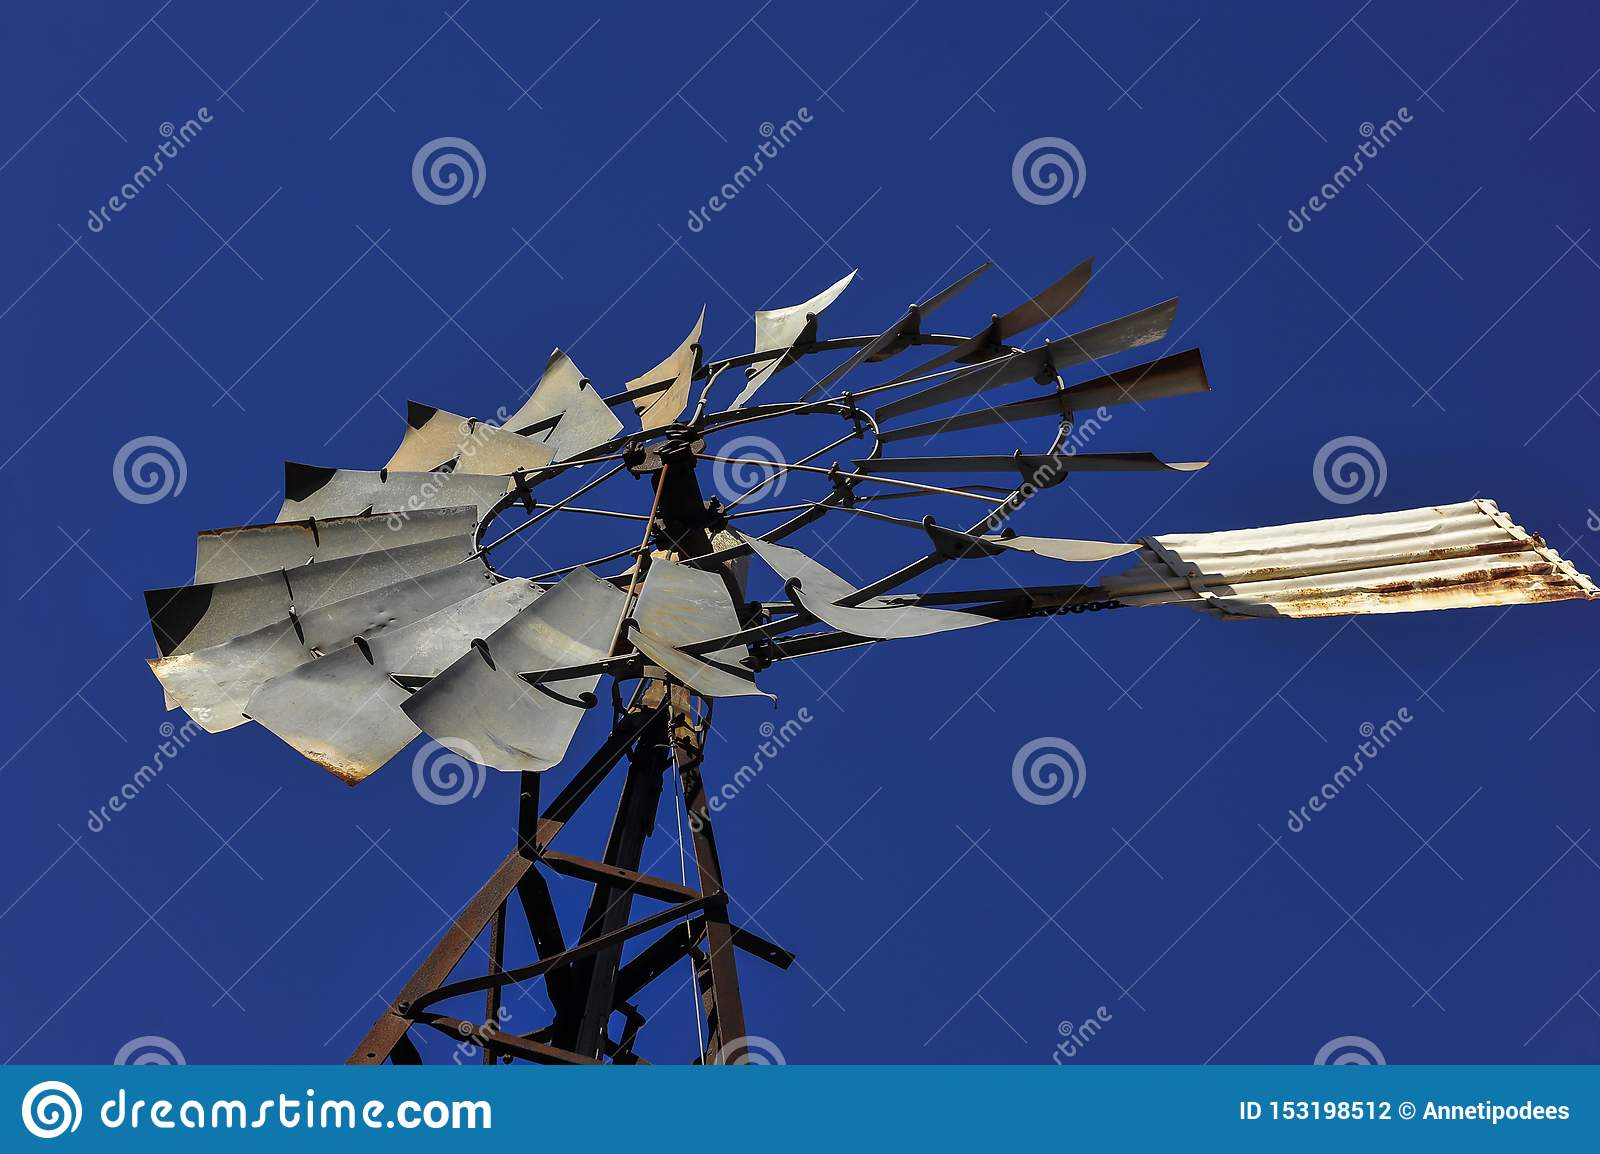 Vintage windmill, looking up into a bright blue sky, stationary capture outback Australia.